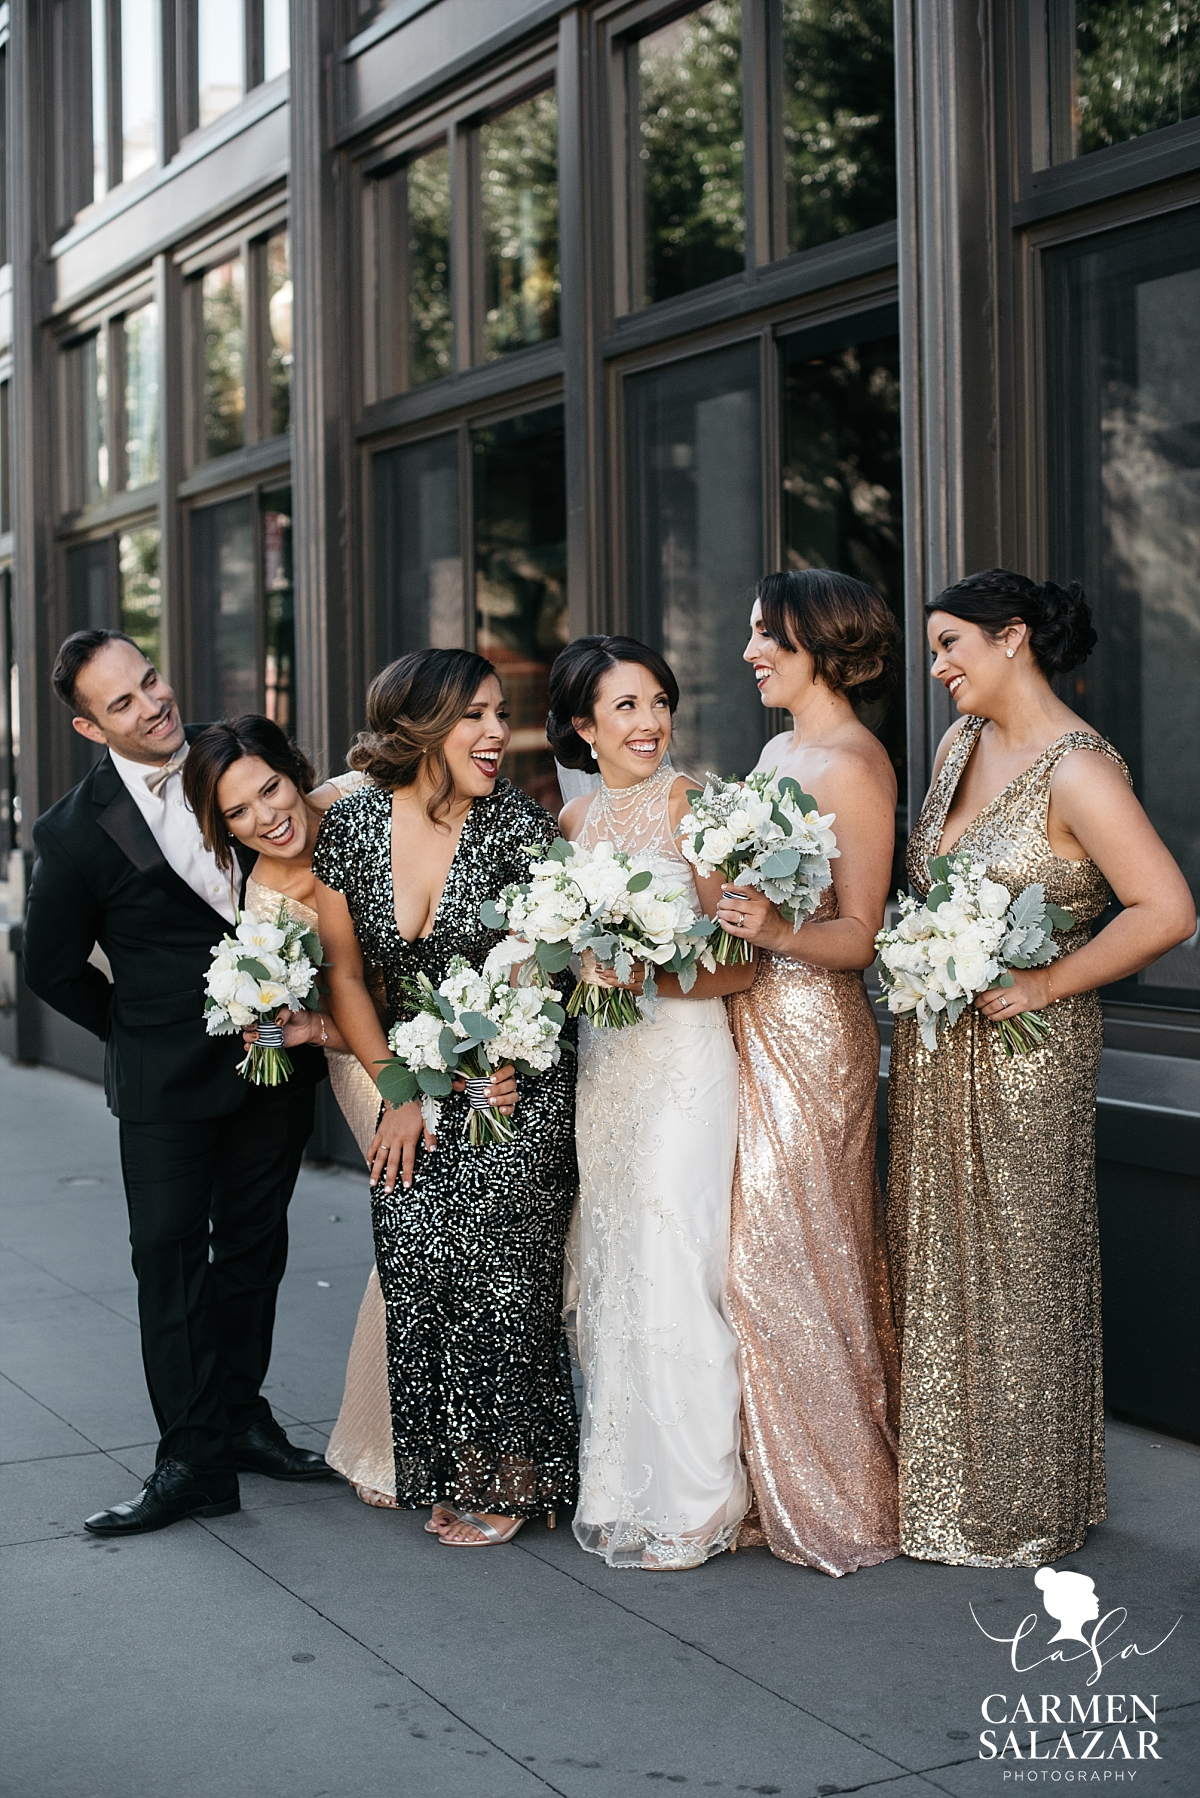 Playful bridal party photos in front of The Grange - Carmen Salazar